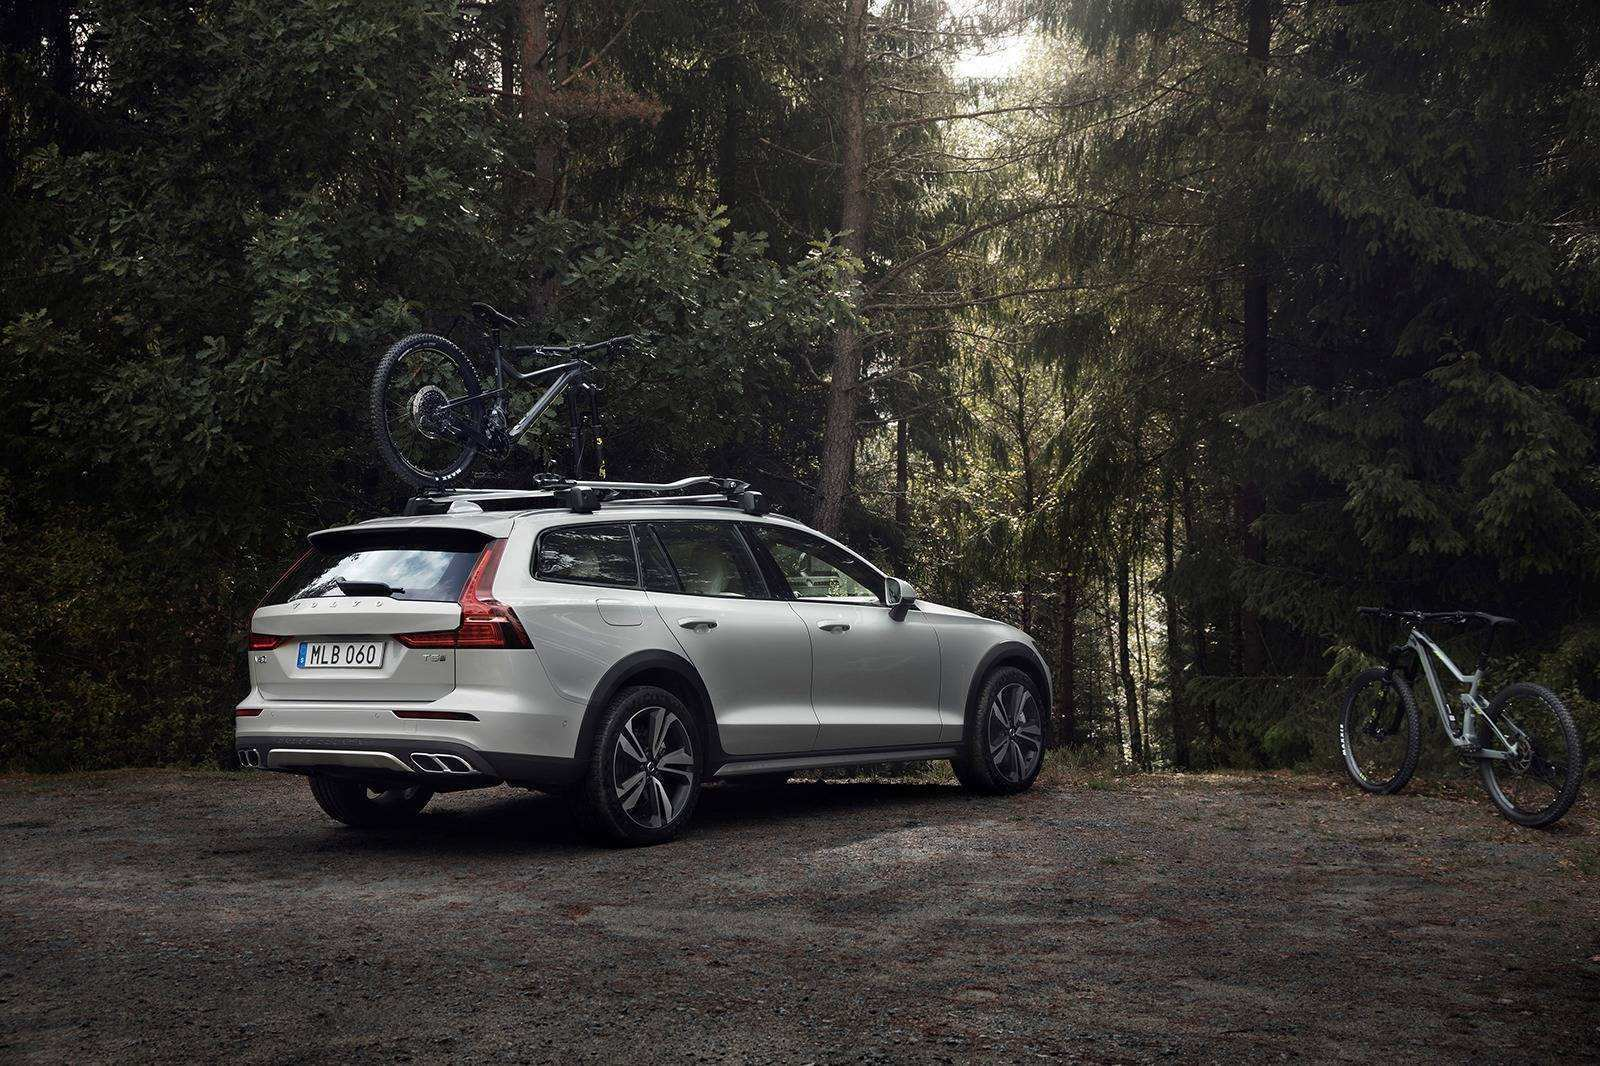 64 Great Best Volvo Cars 2019 Models Specs Photos for Best Volvo Cars 2019 Models Specs